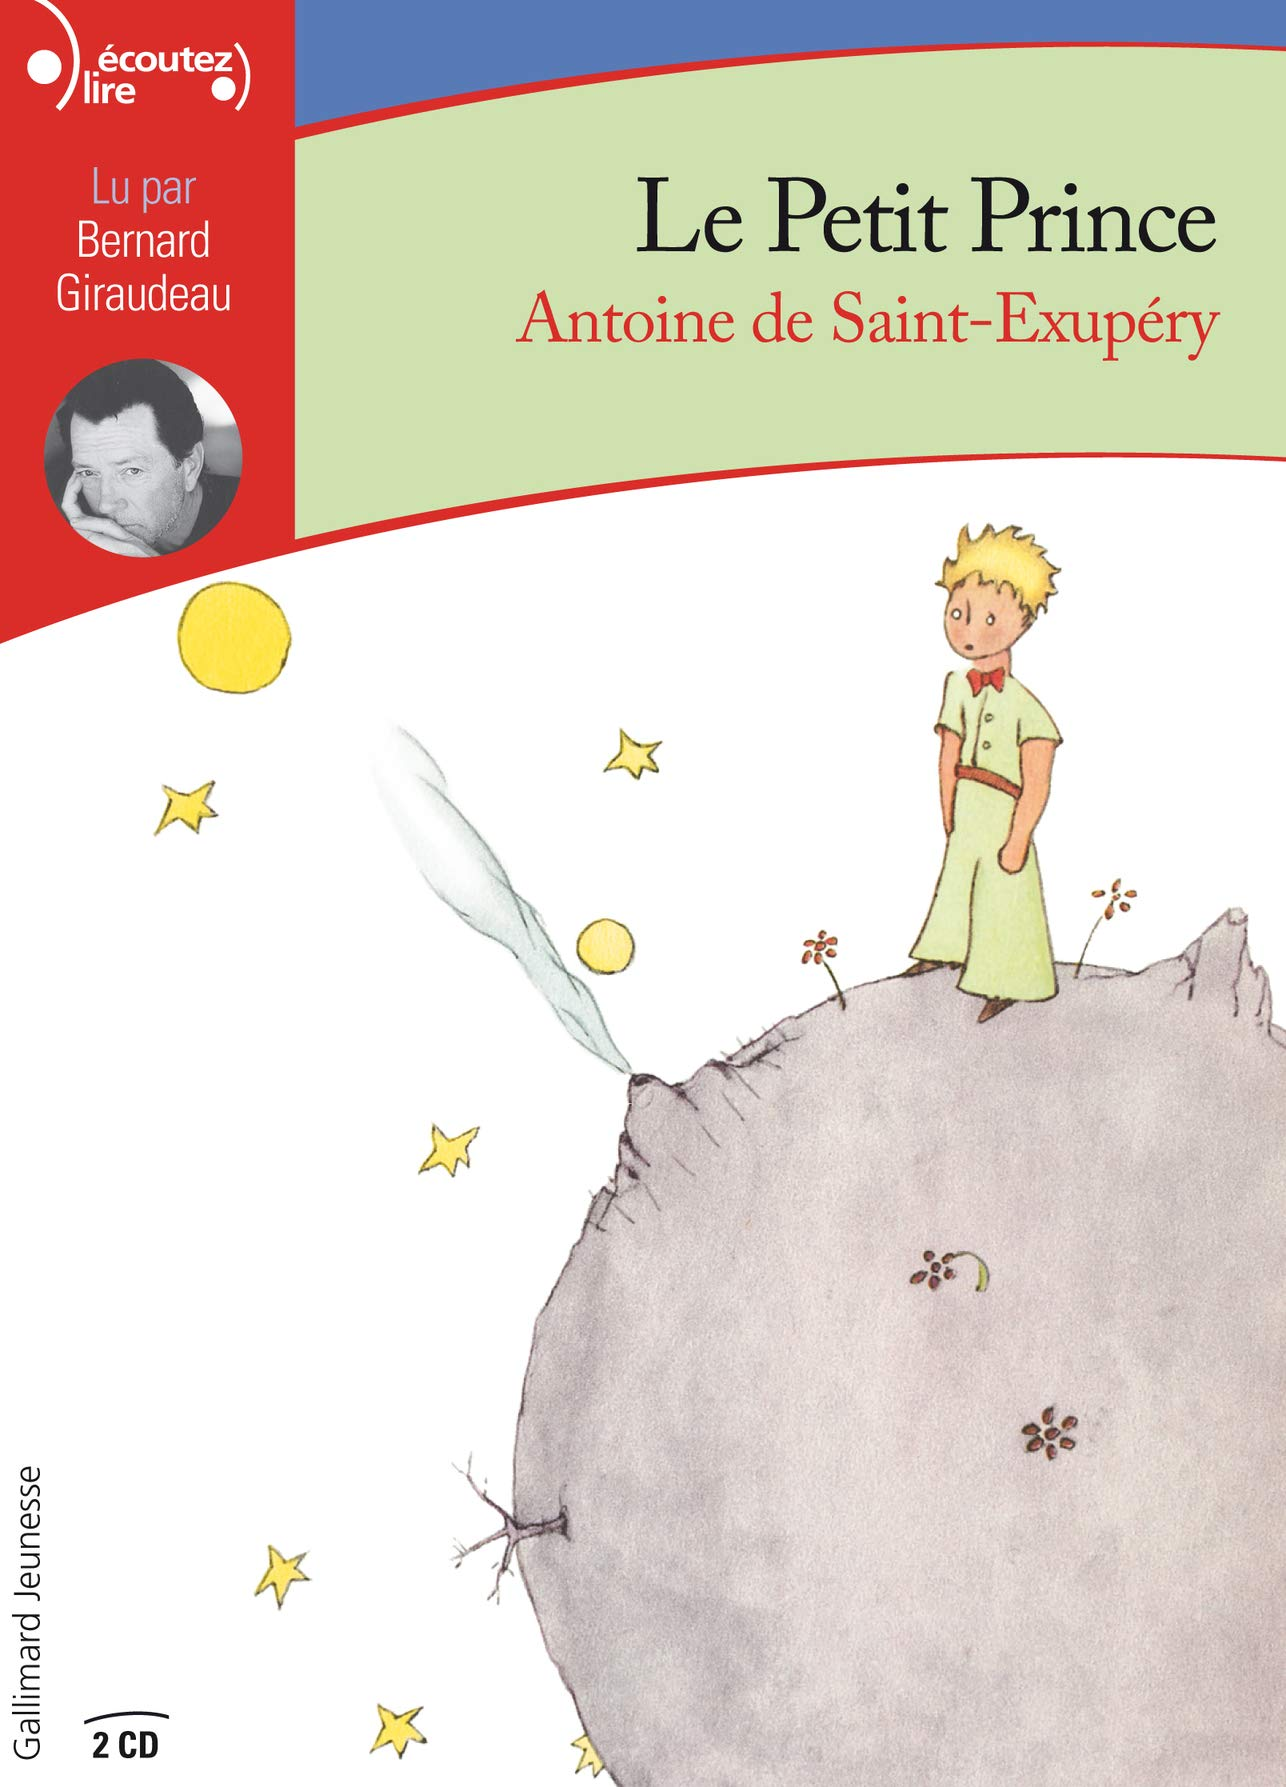 Read Online Petit Prince (Le) - 2CD MP3 livre audio (French Edition) PDF